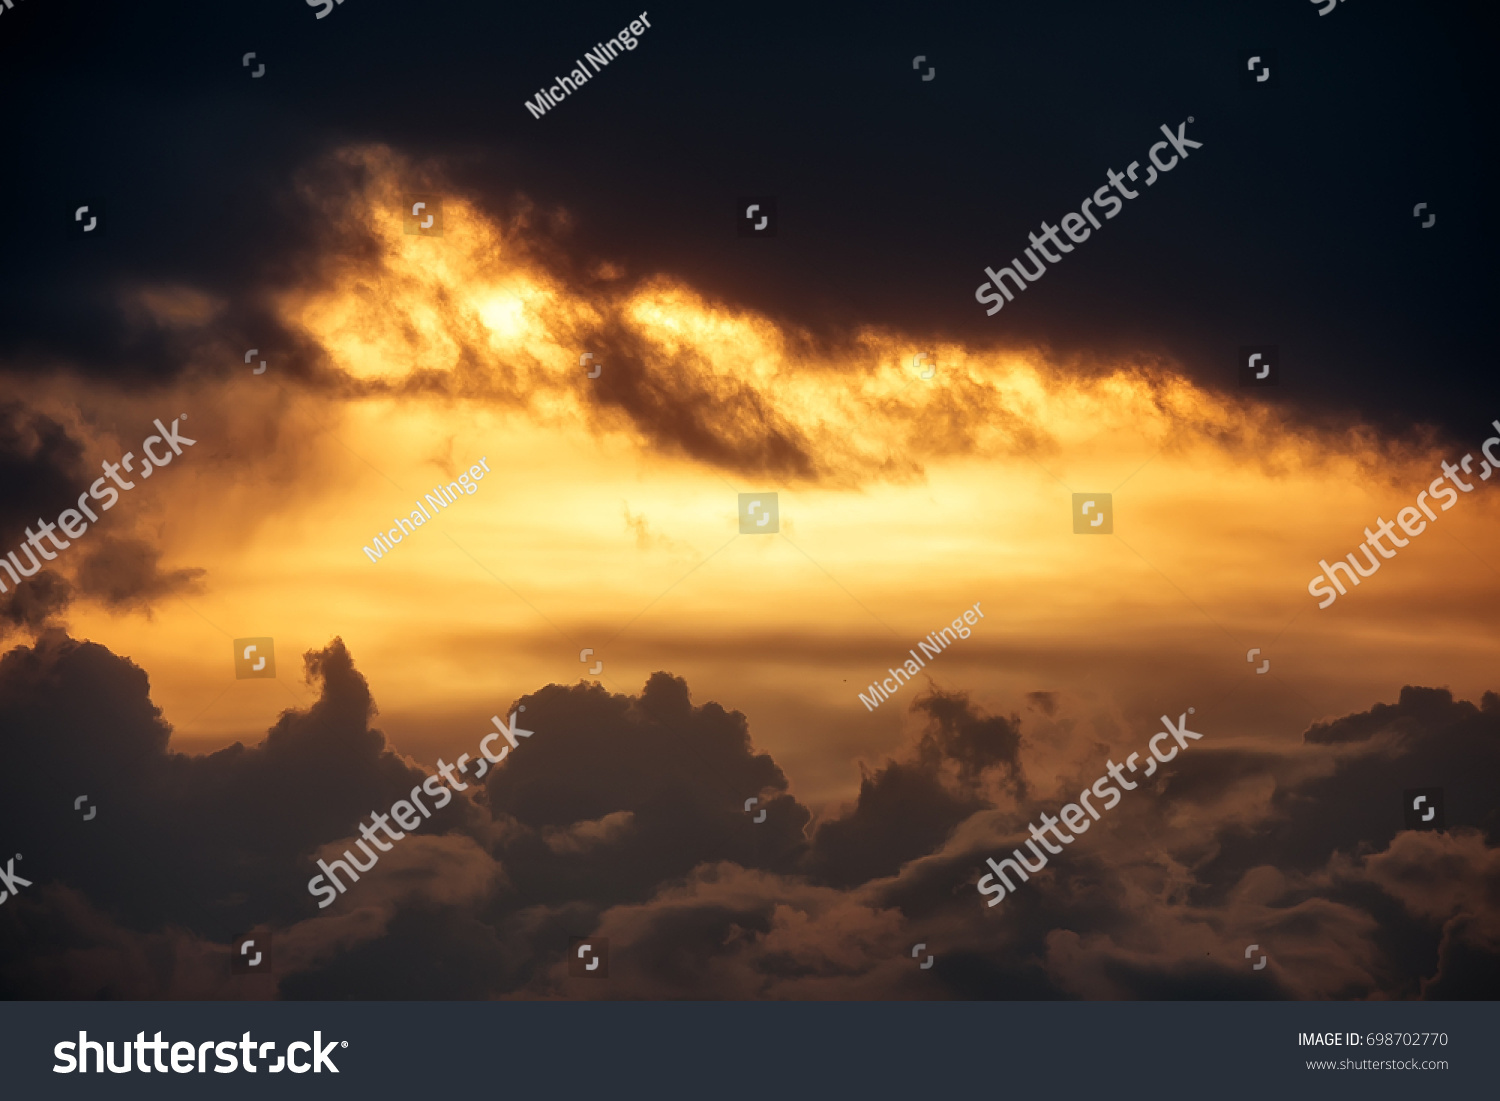 Very dramatic clouds scene with sunset on the sky